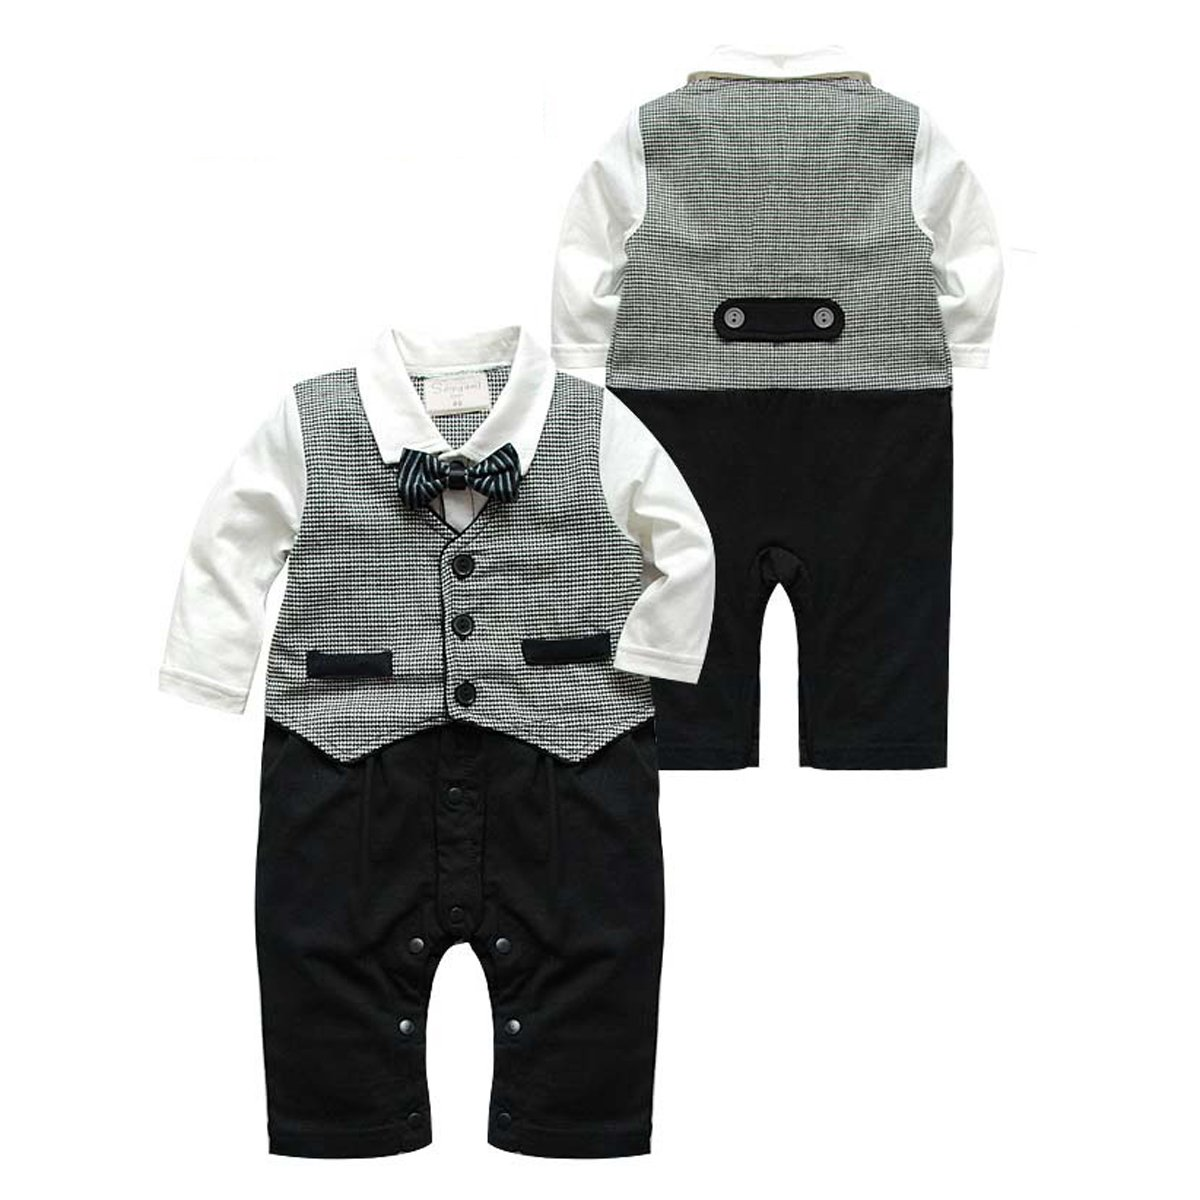 Puseky Newborn Baby Boys Gentleman Suit Bow Tie Romper Jumpsuit Outfits Clothes (3~6 Months)